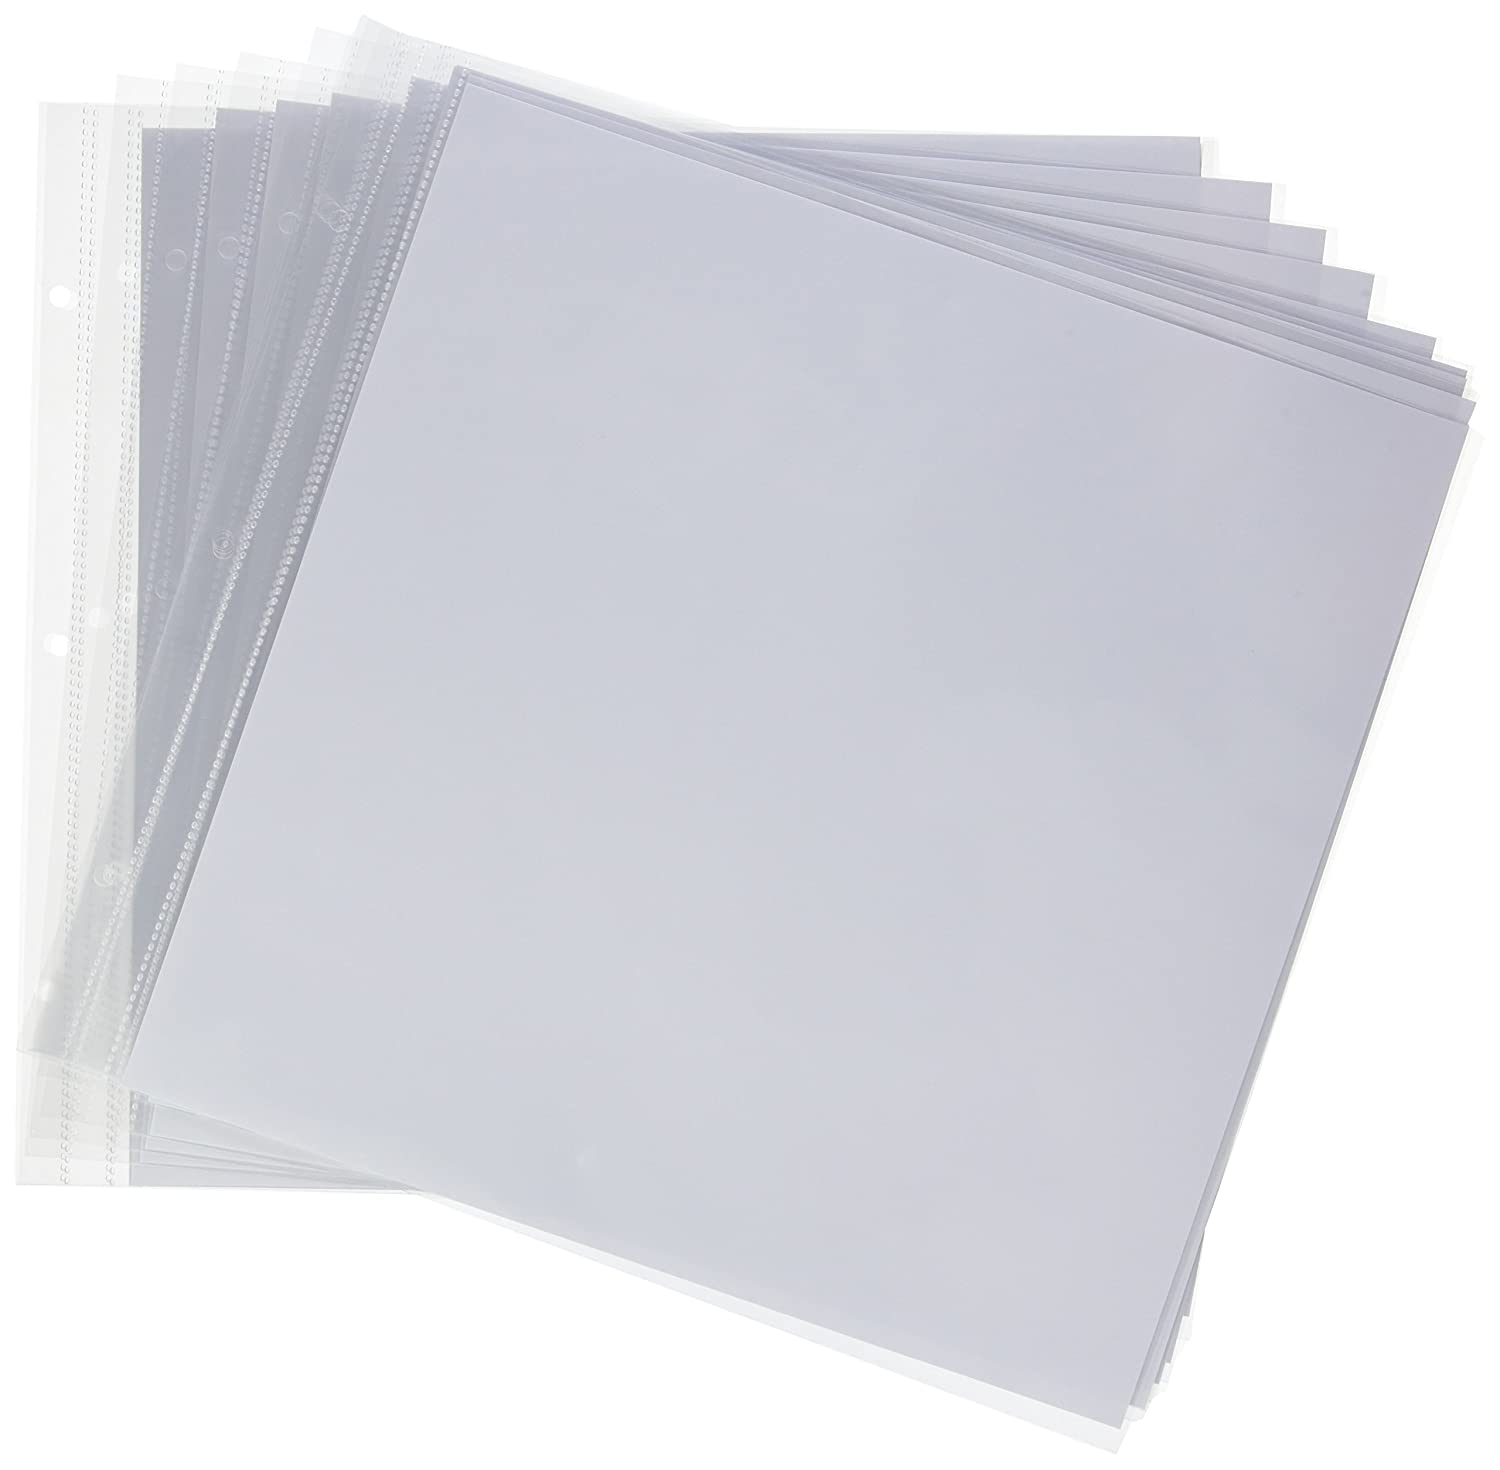 Artemio 305 X 305 Cm Plastic Sleeves With 3 Holes Photo Album